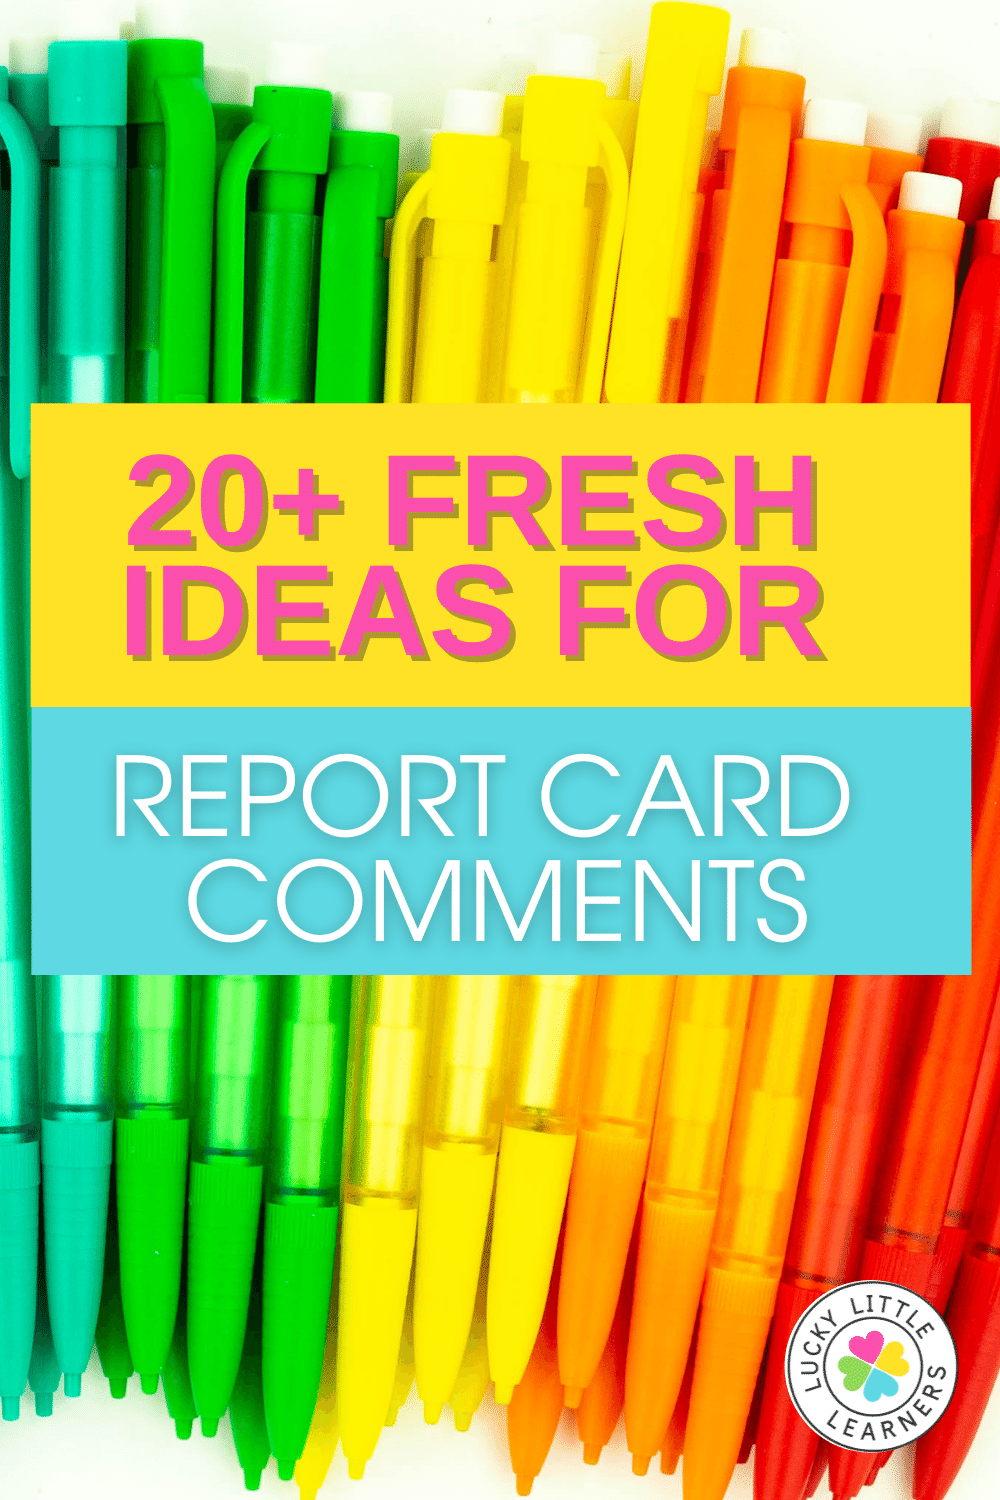 20+ fresh ideas for report card comments that will build a foundation for constructive communication with students and families